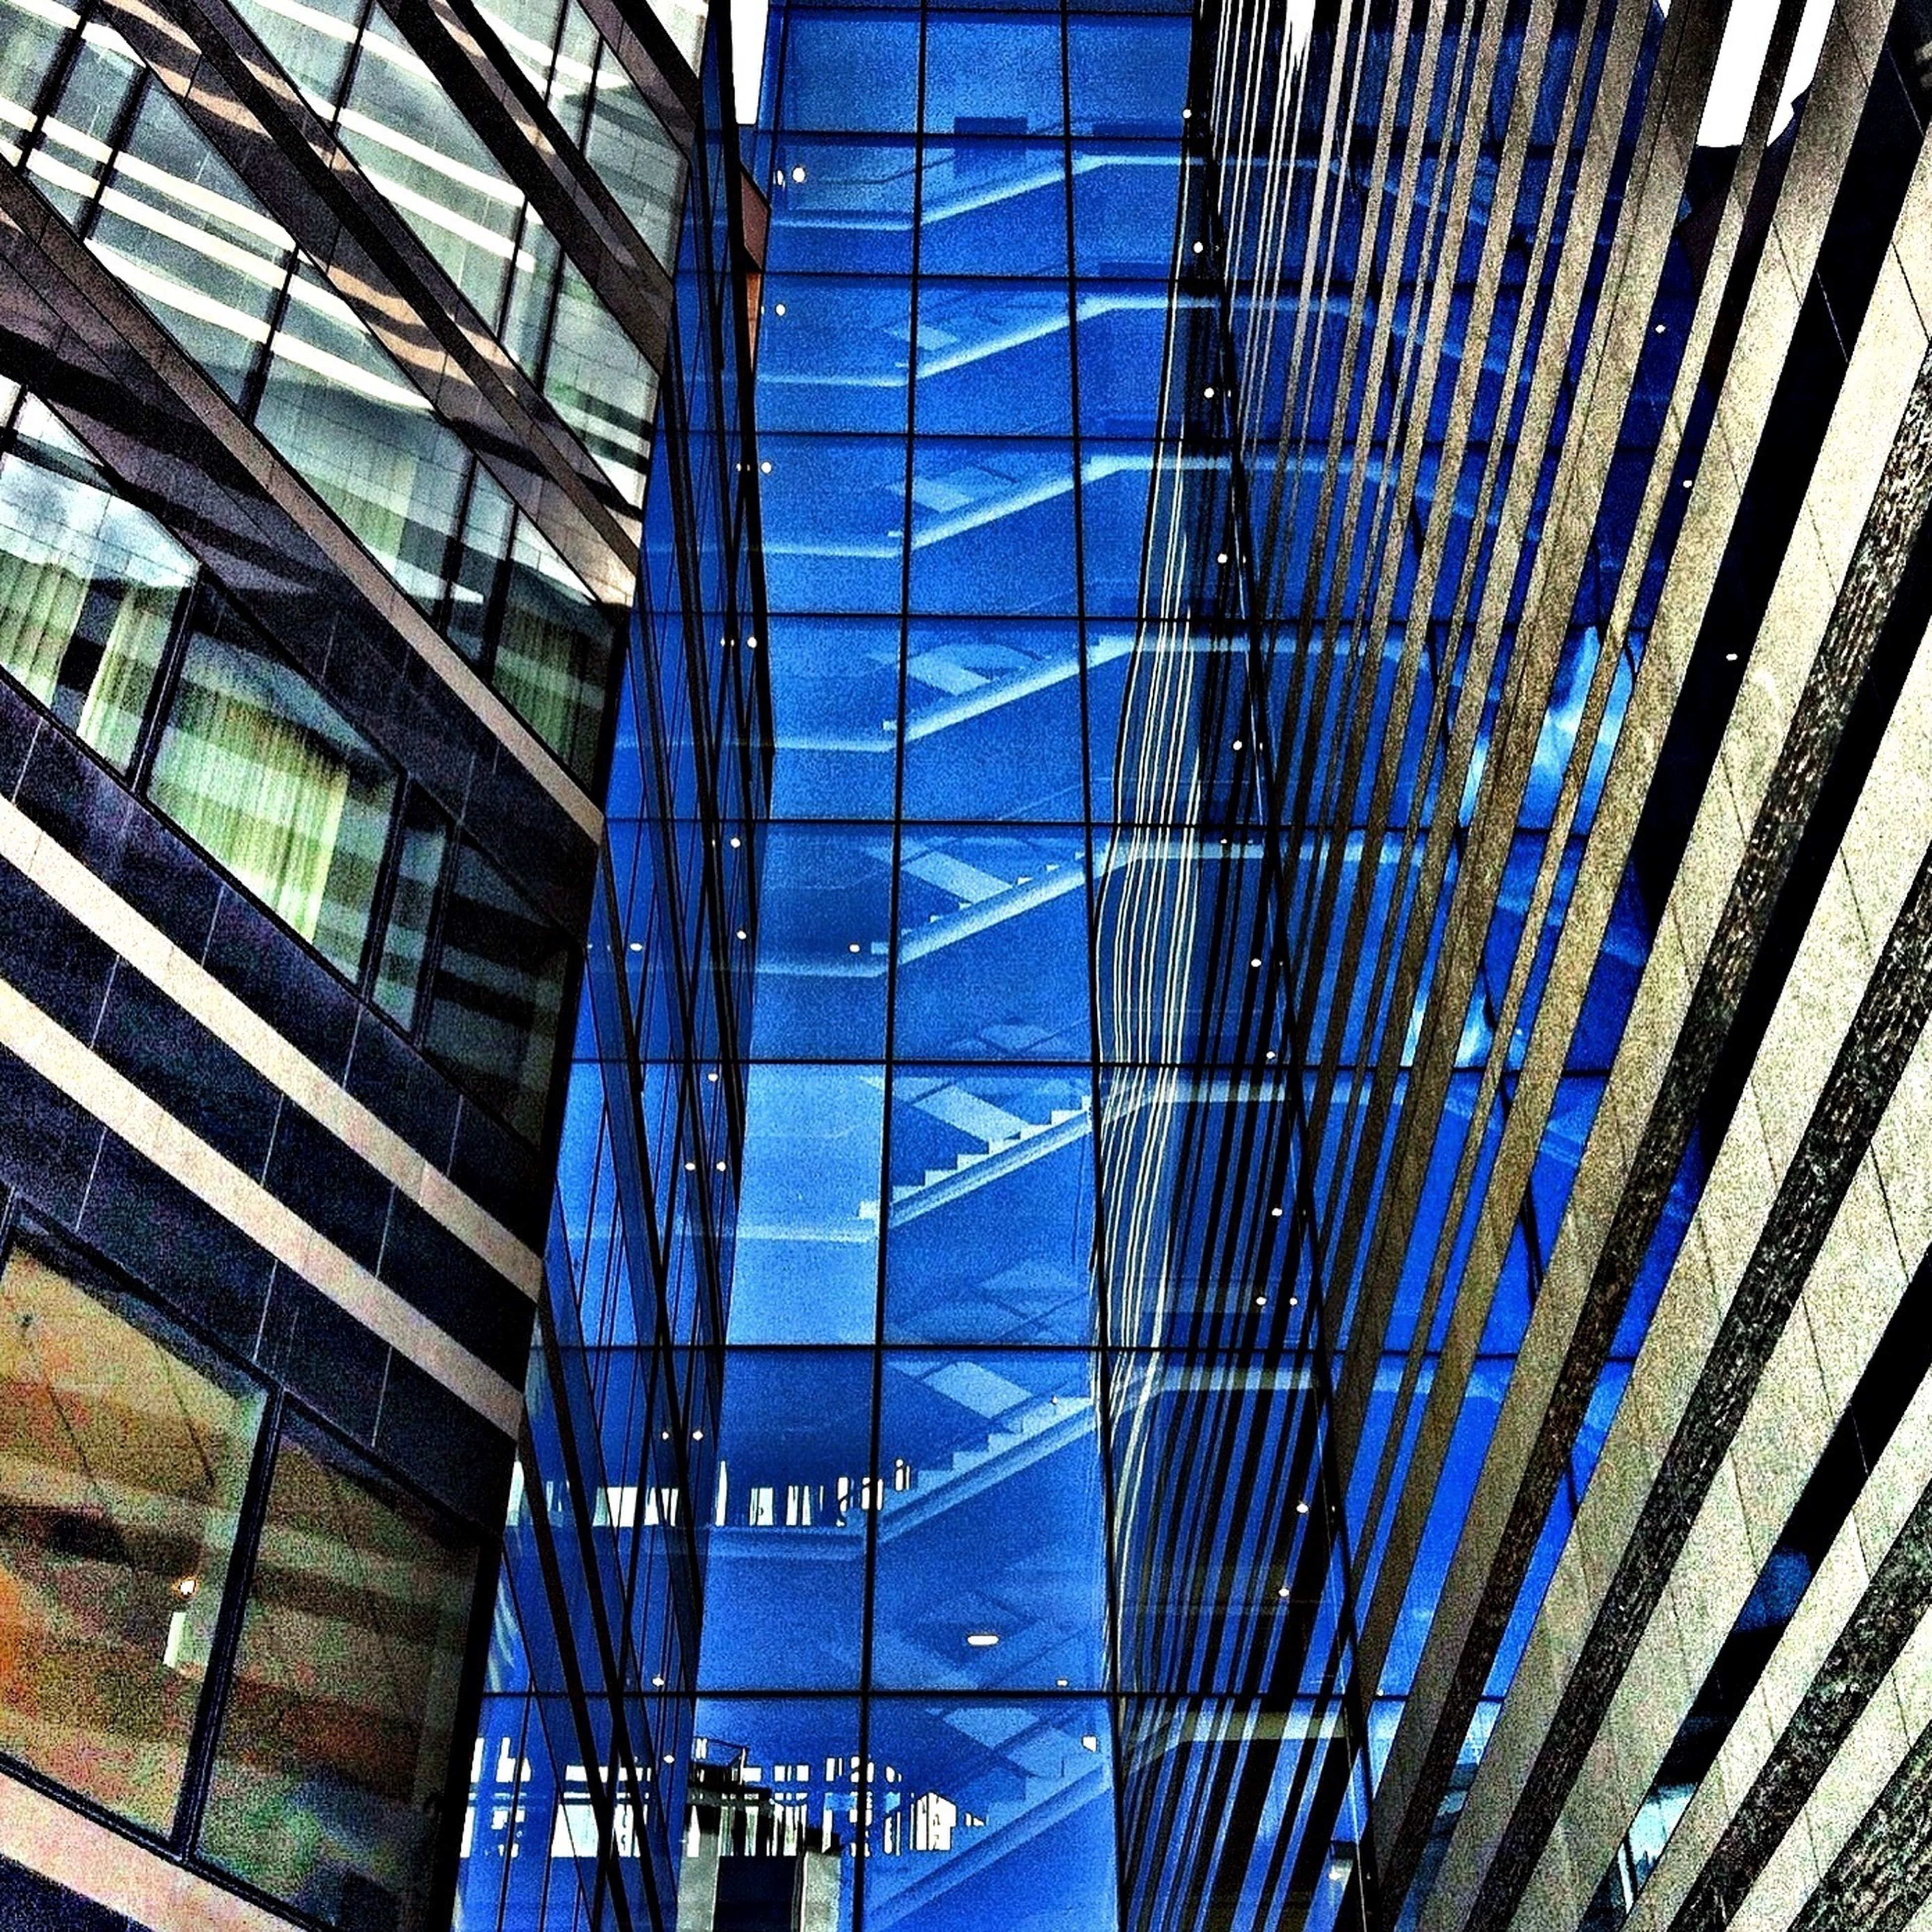 architecture, built structure, low angle view, modern, building exterior, glass - material, blue, pattern, office building, city, full frame, building, reflection, day, backgrounds, architectural feature, grid, no people, tall - high, ceiling